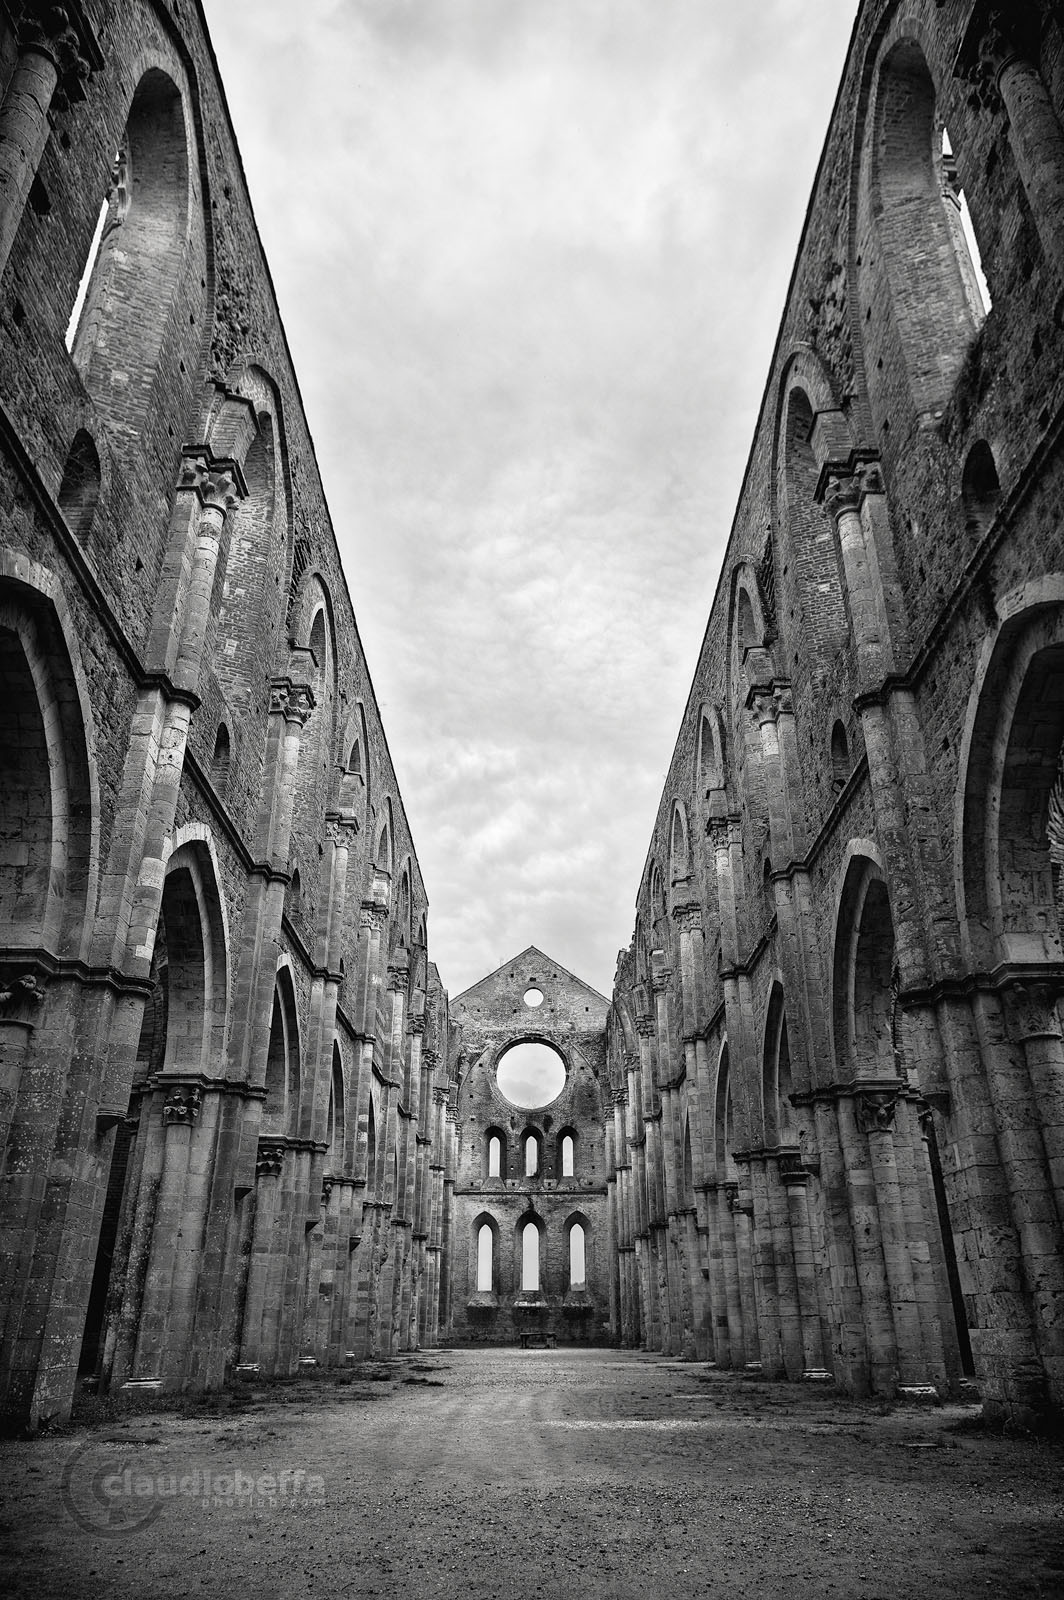 San Galgano, Abbey, Nave, Windows, Layers, Light, Shadows, Capitals, Arches, Ruin, Tuscany, Italy, Nature, History, Architecture, Symmetry